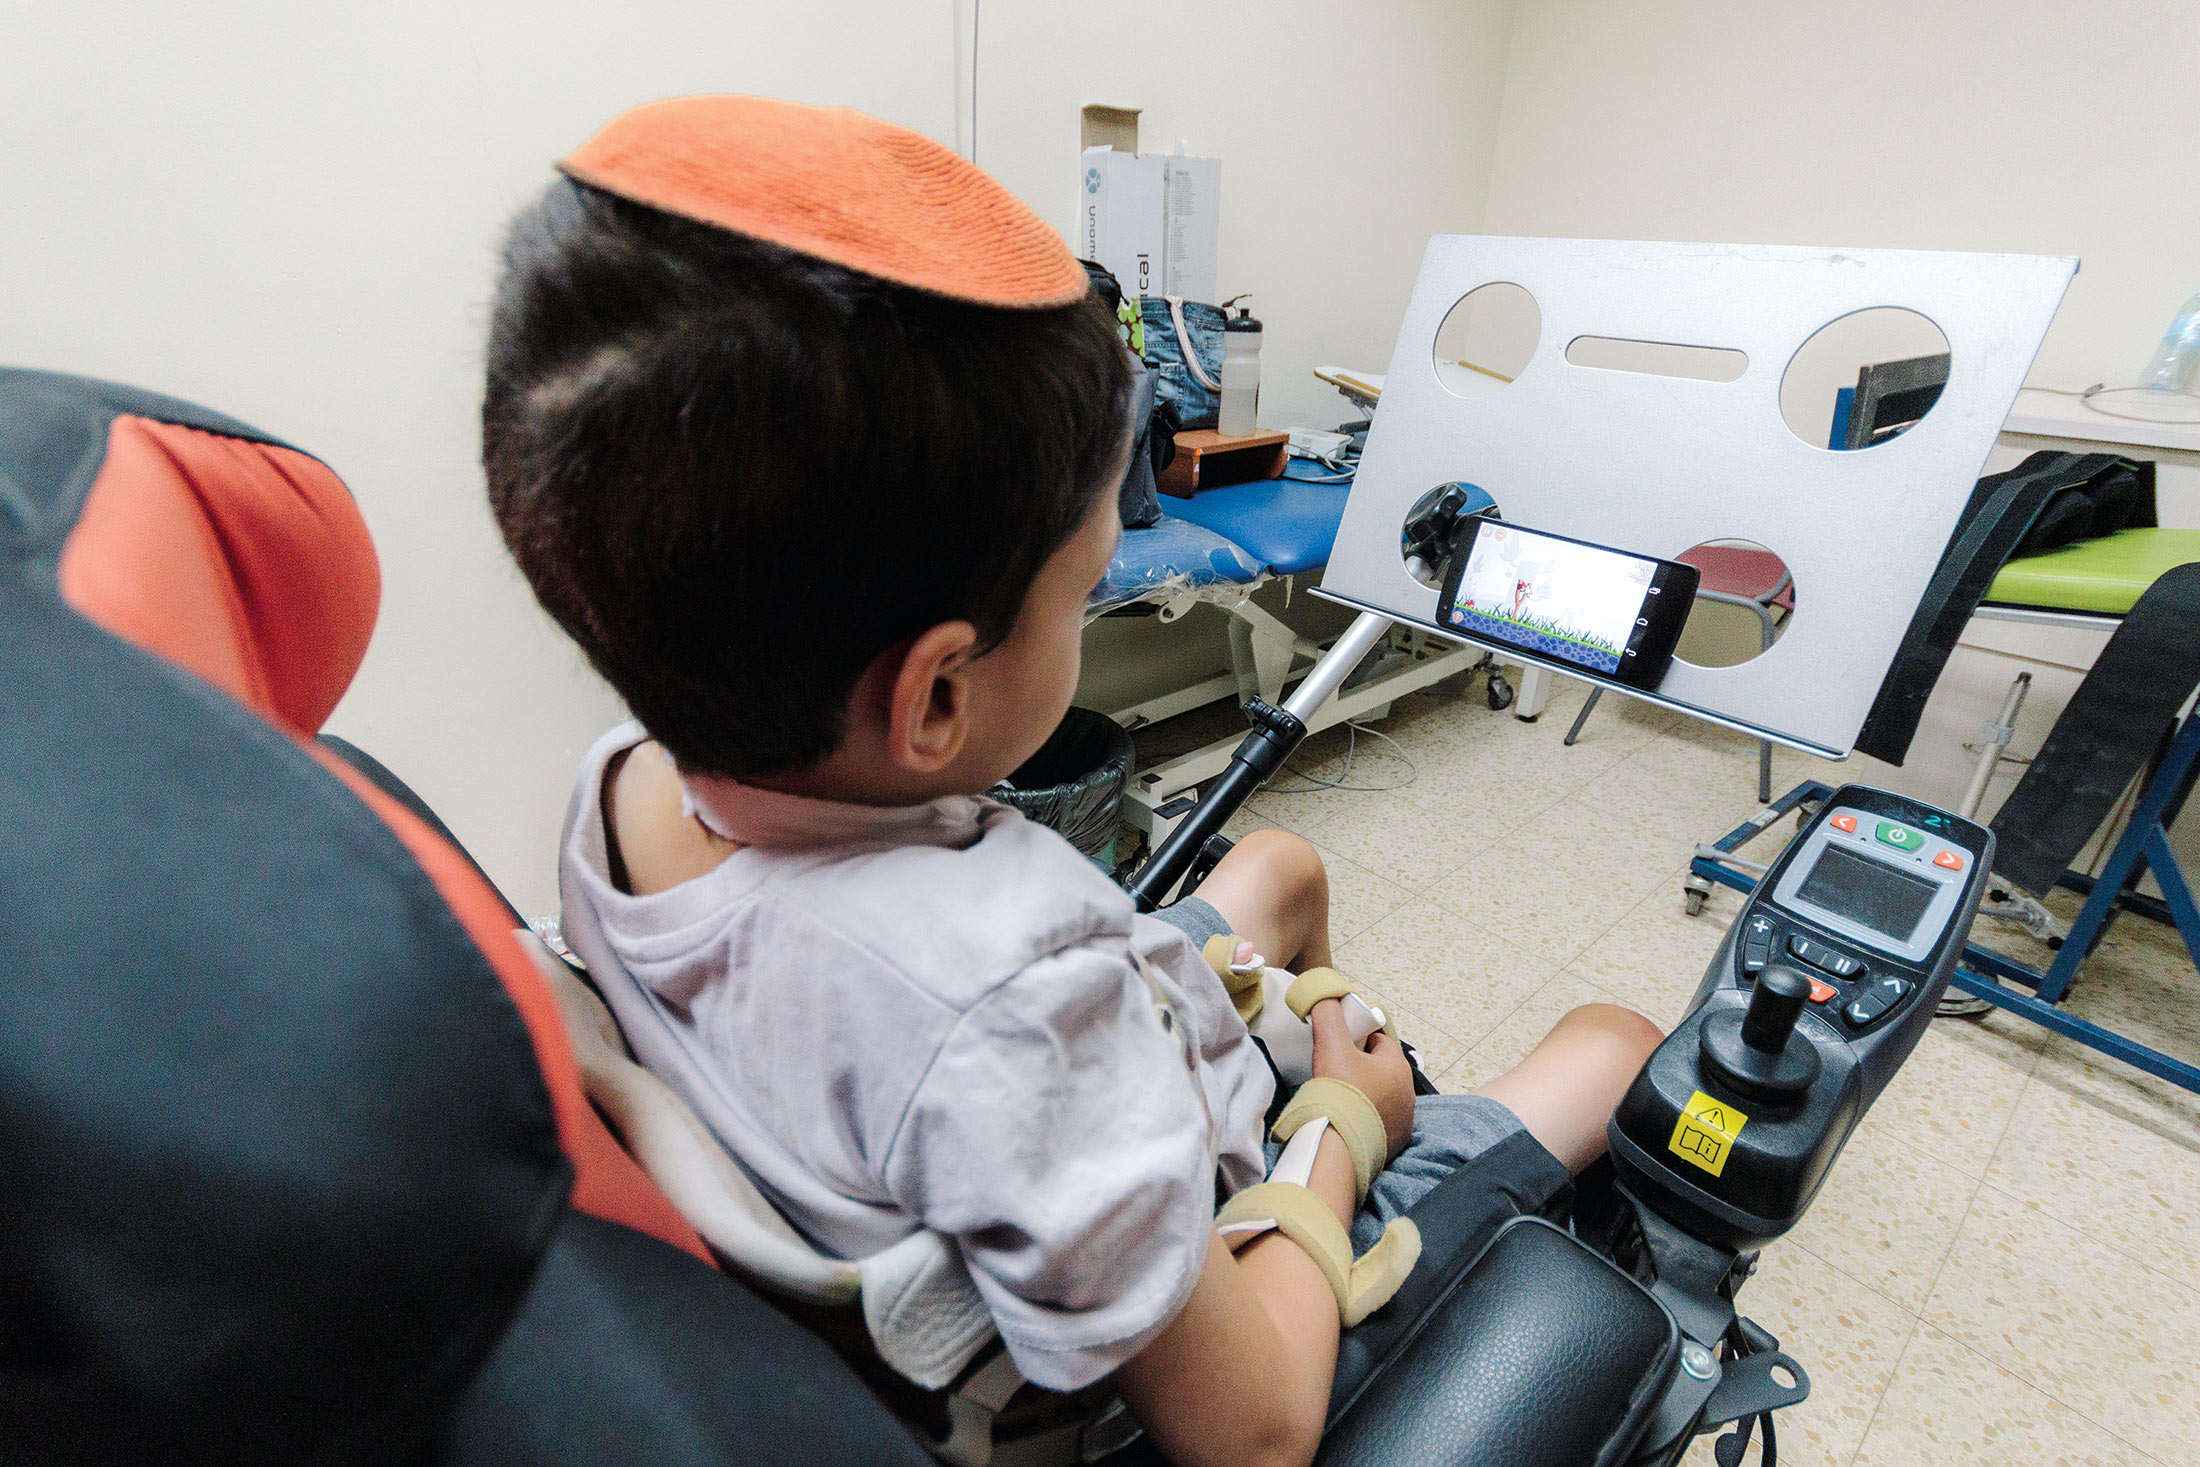 Sesame Phone: A Hands-Free Smartphone for Paralyzed Users - Bloomberg